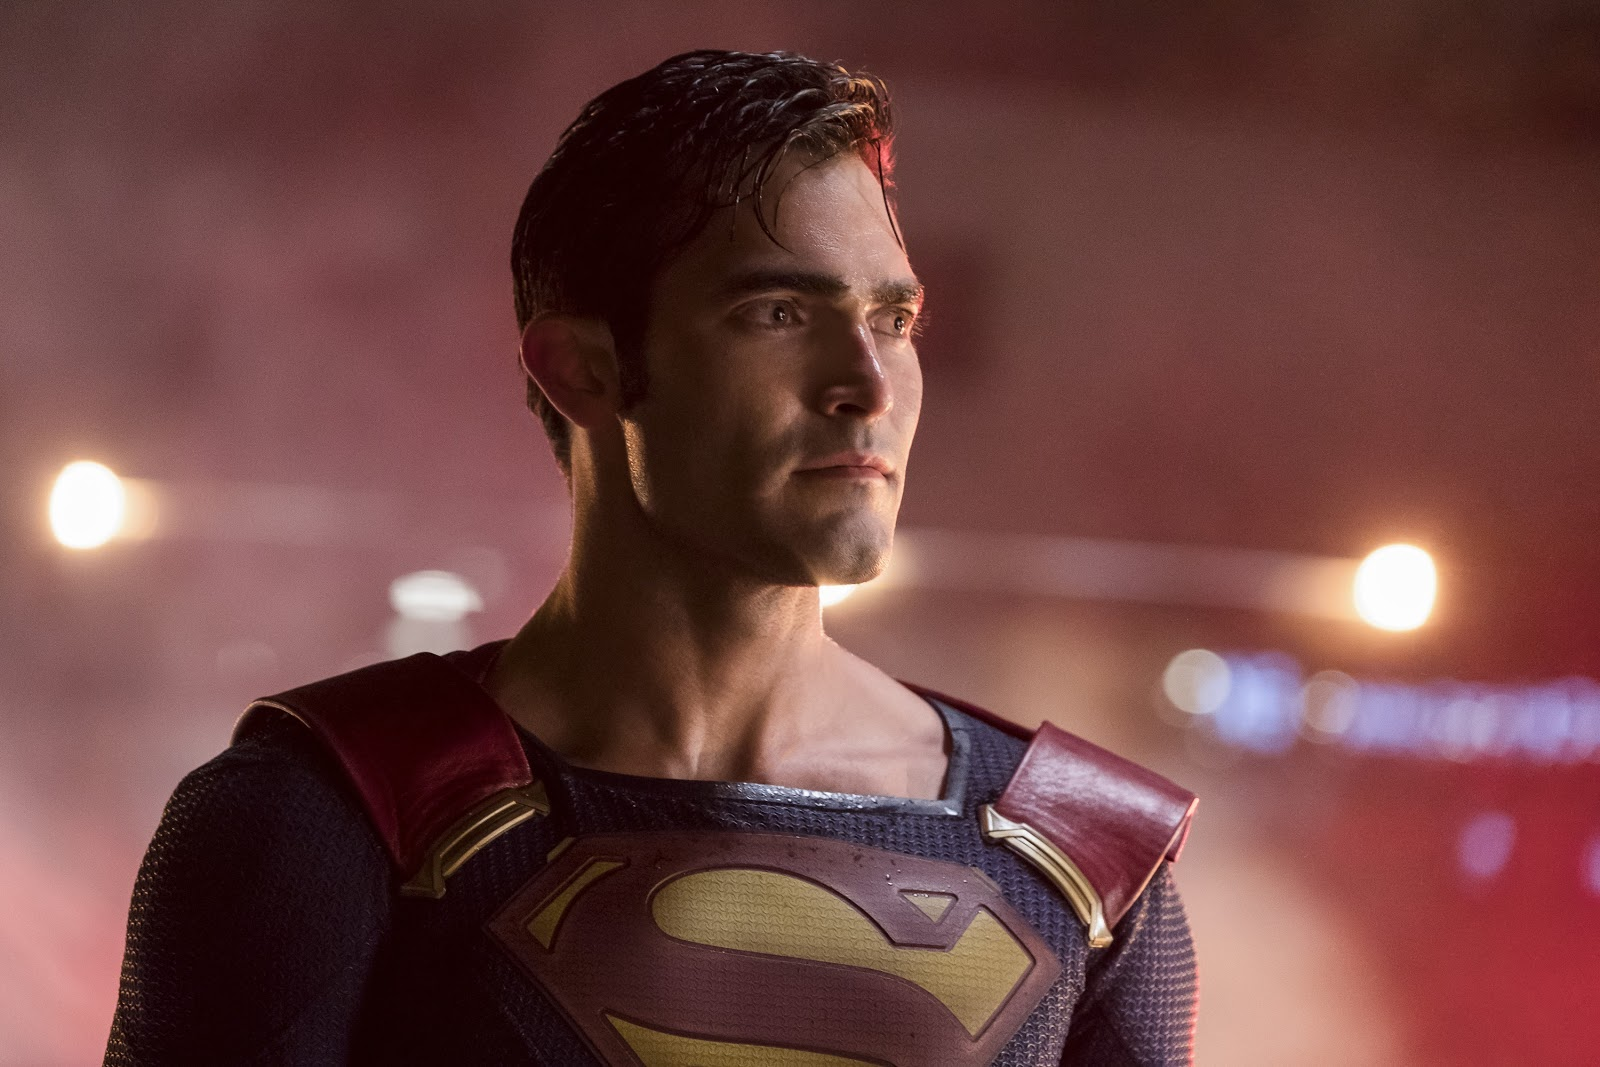 Arrowverse's Superman